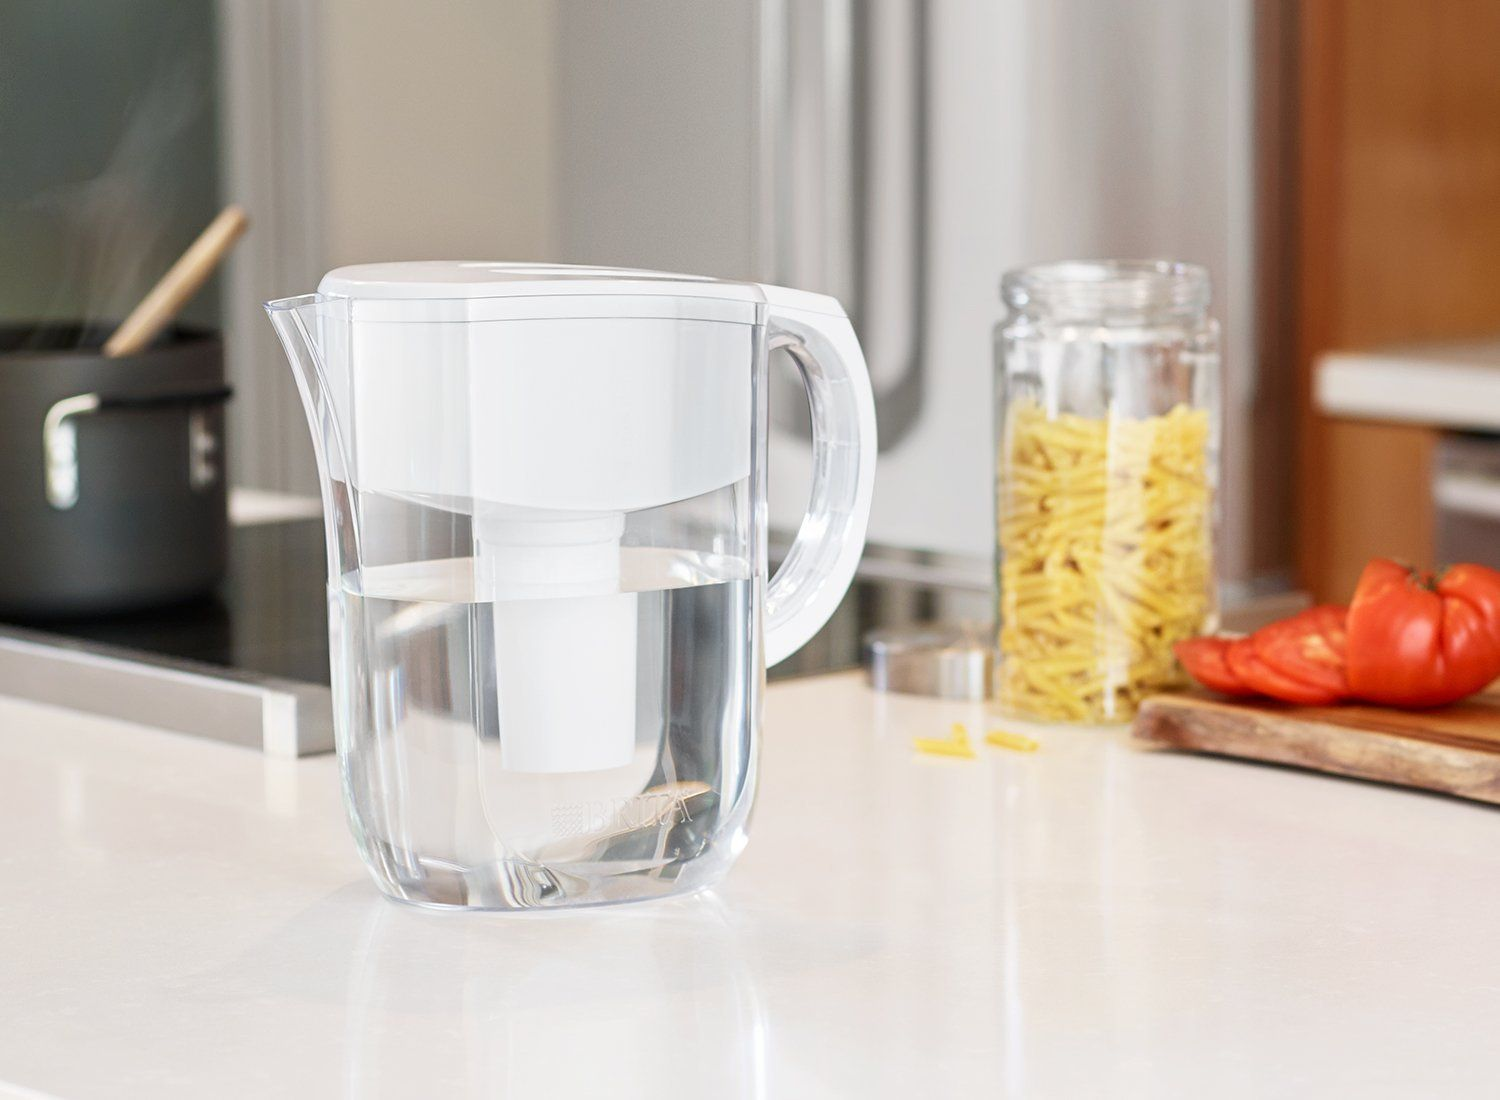 Brita 10cup everyday water filter pitcher water filter